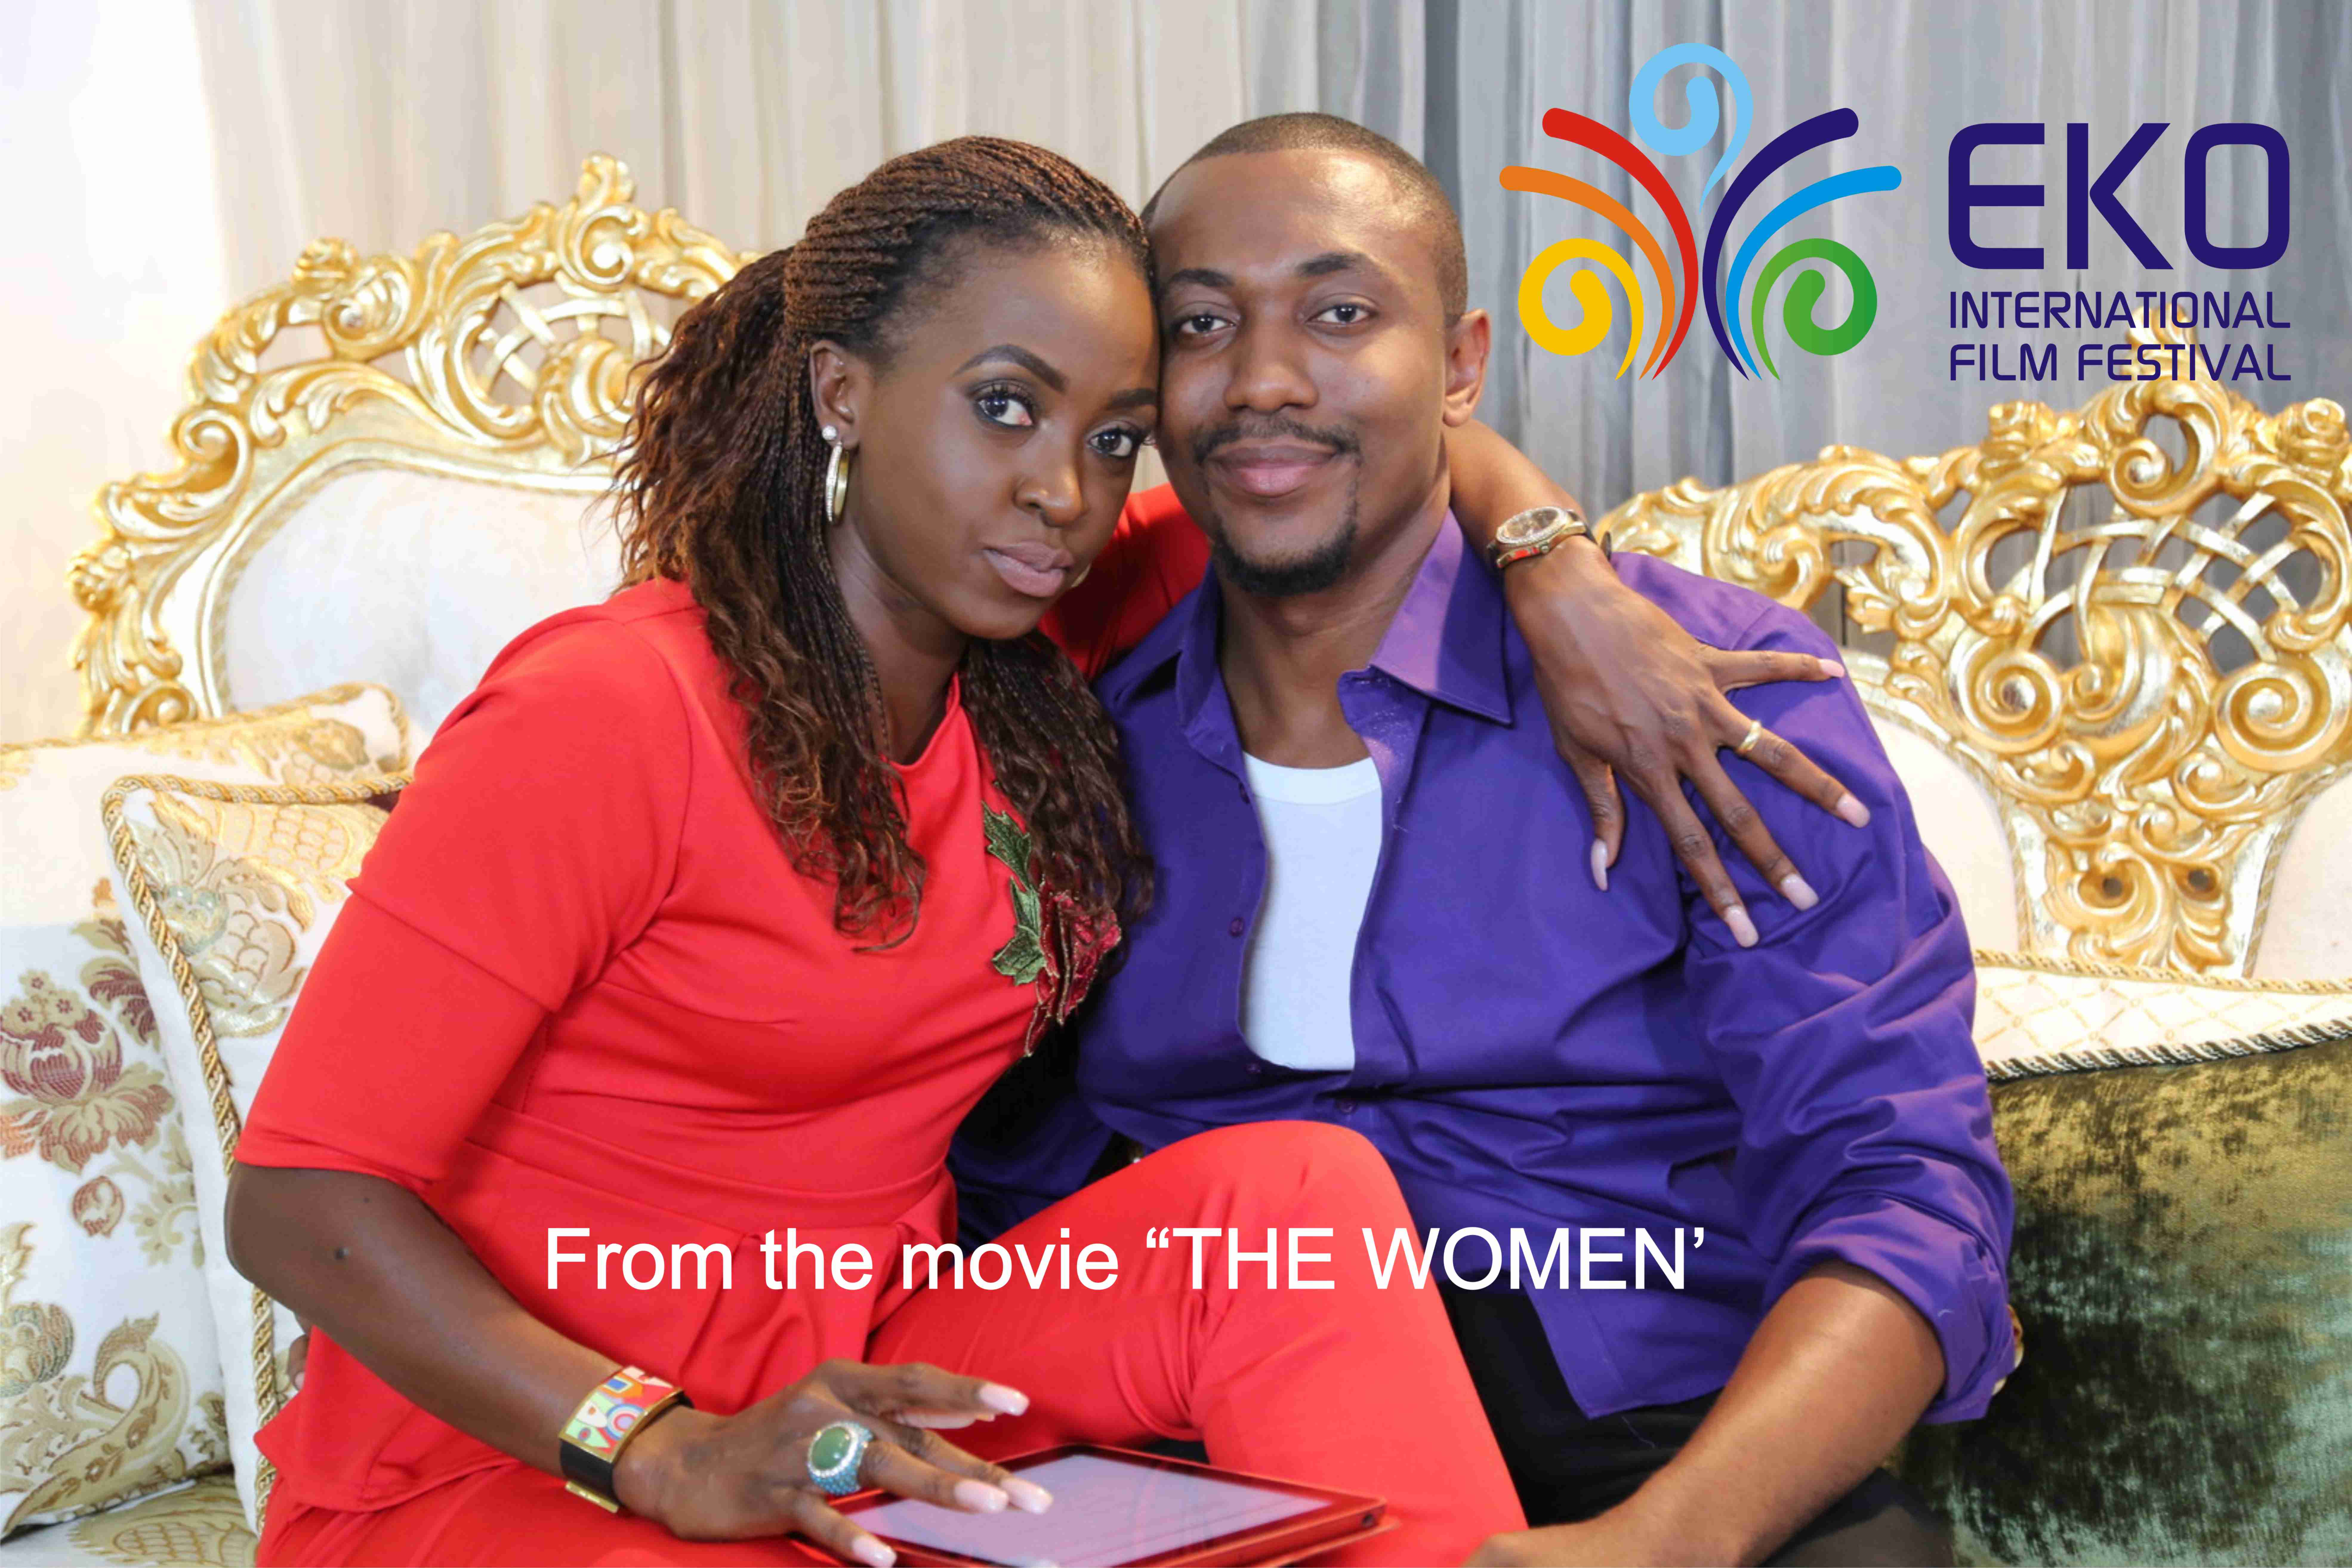 International cinema clips website 01 11 - If You Are Considering A Partnership With 8th Edition Of Eko International Film Festival One Of The Largest Film Festival In African It Will Not Only